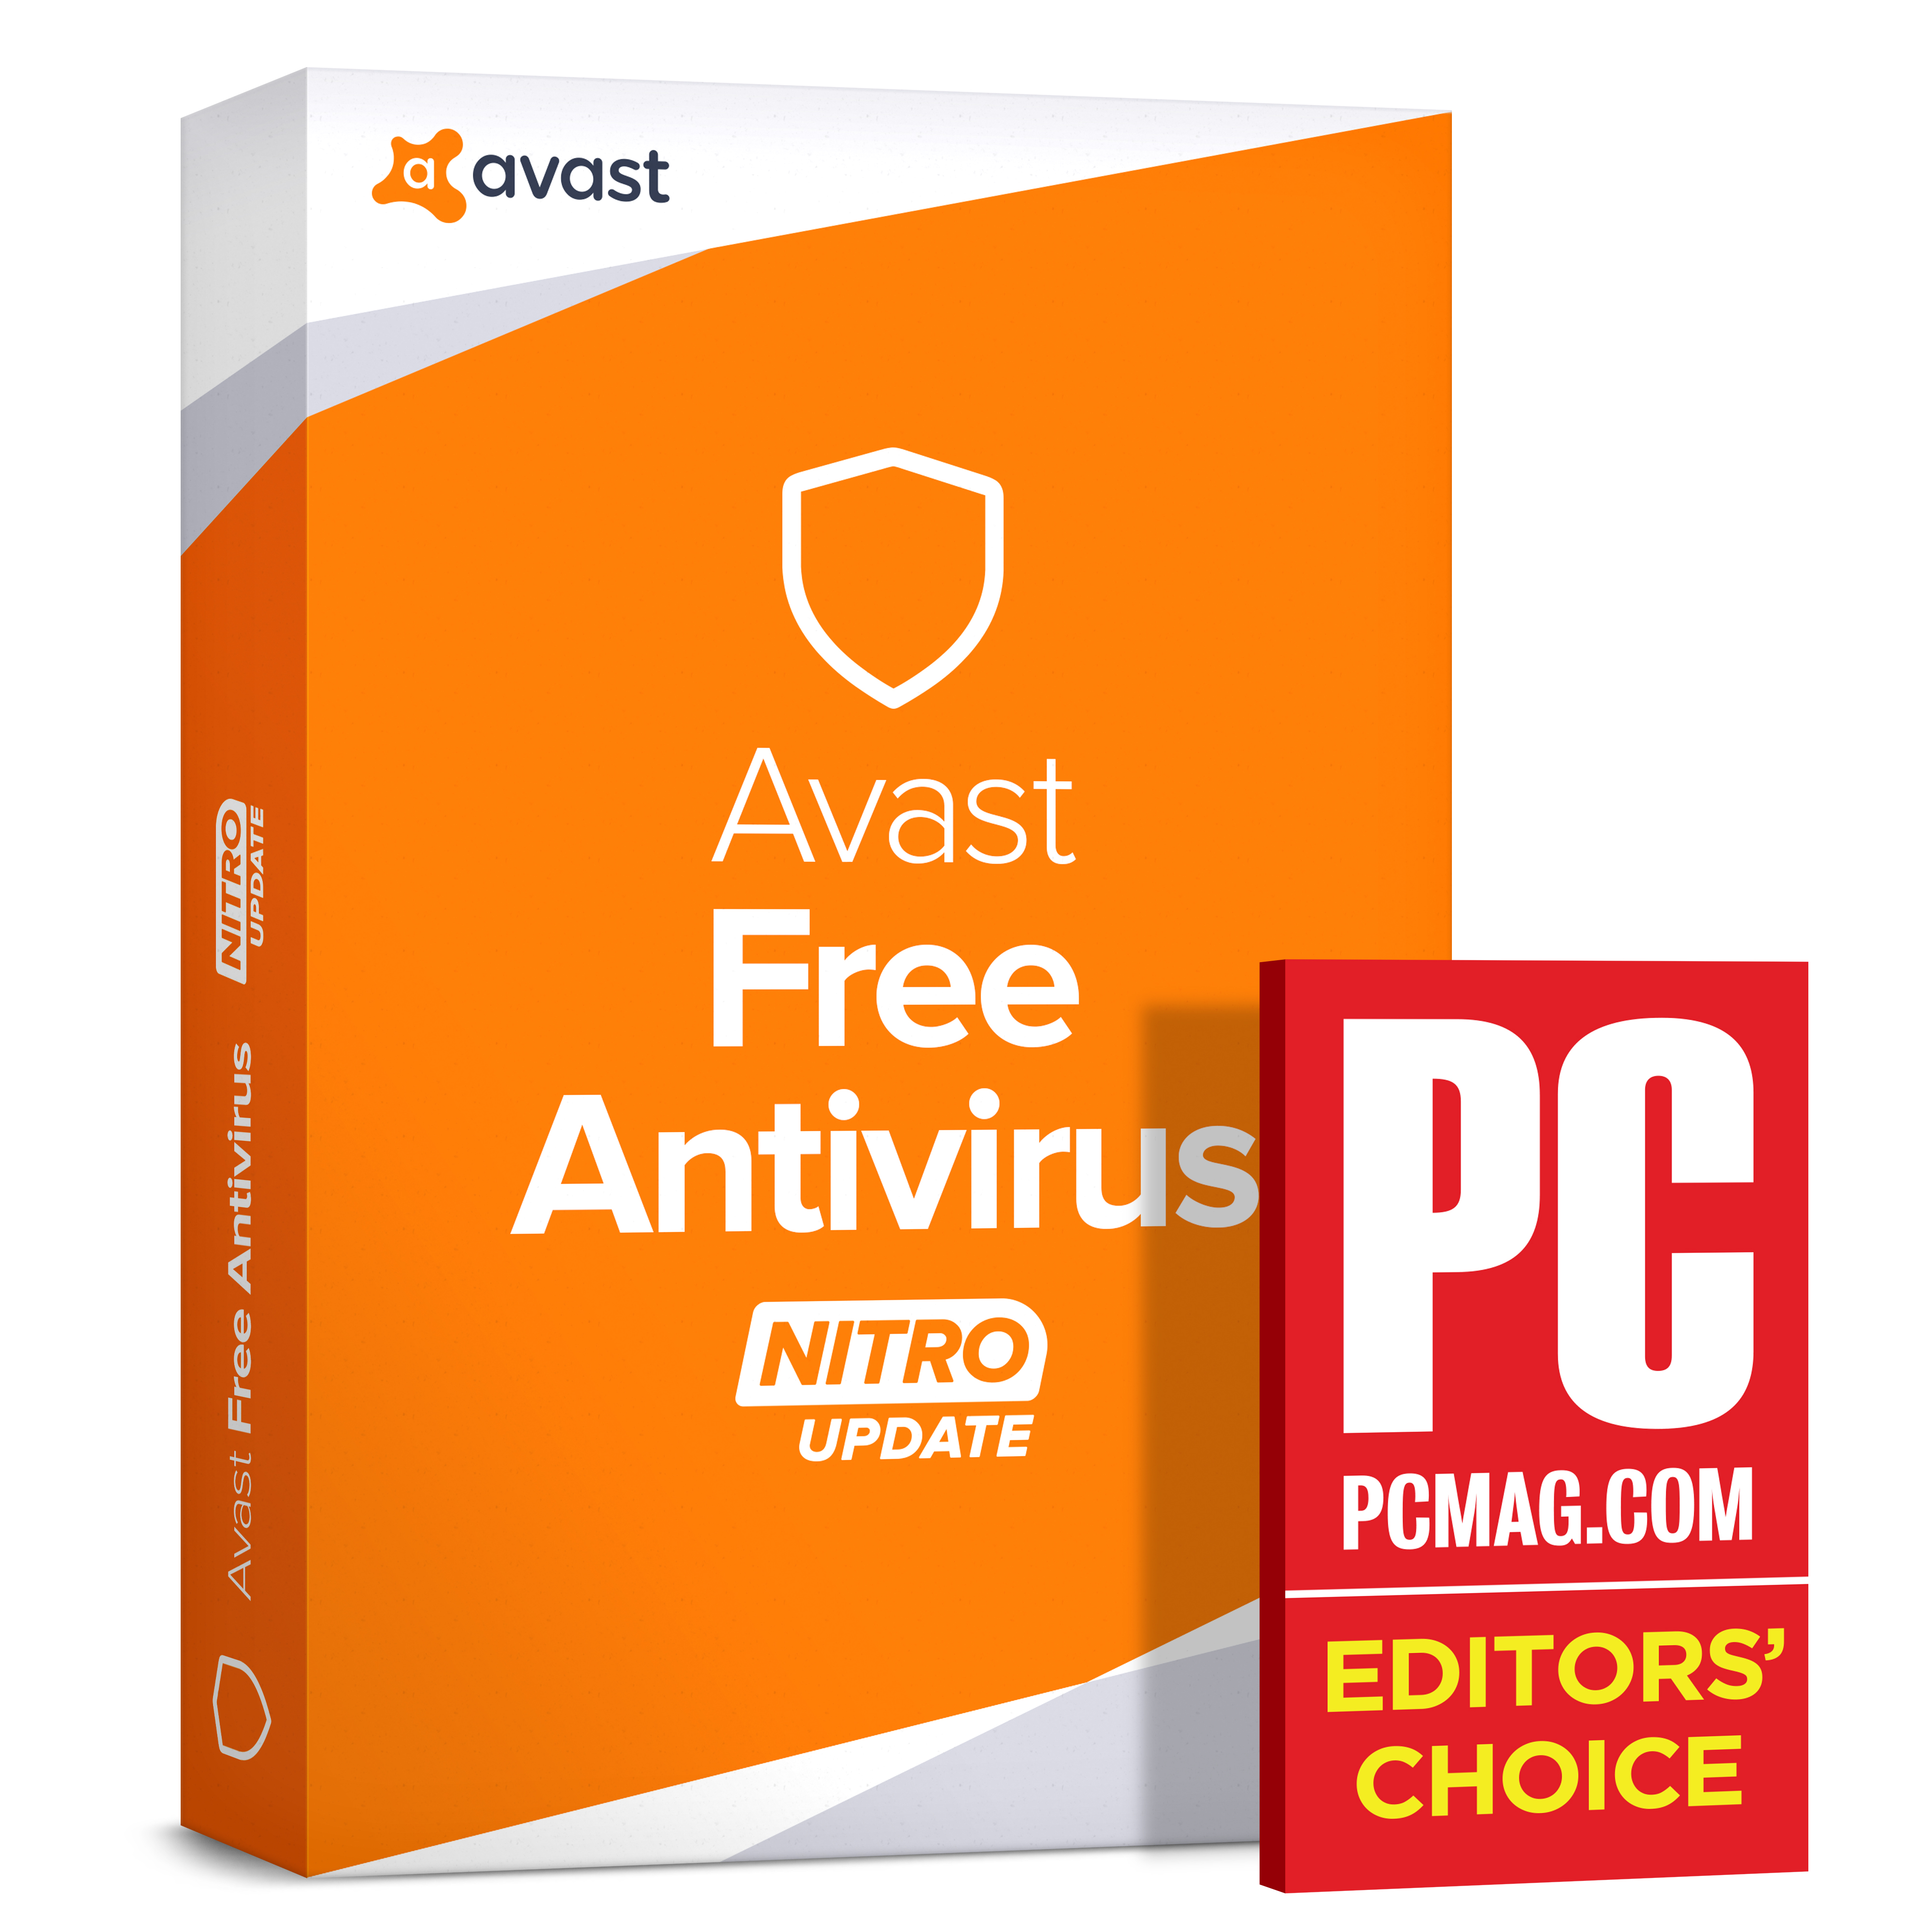 avast-free-antivirus-nitro-update-download